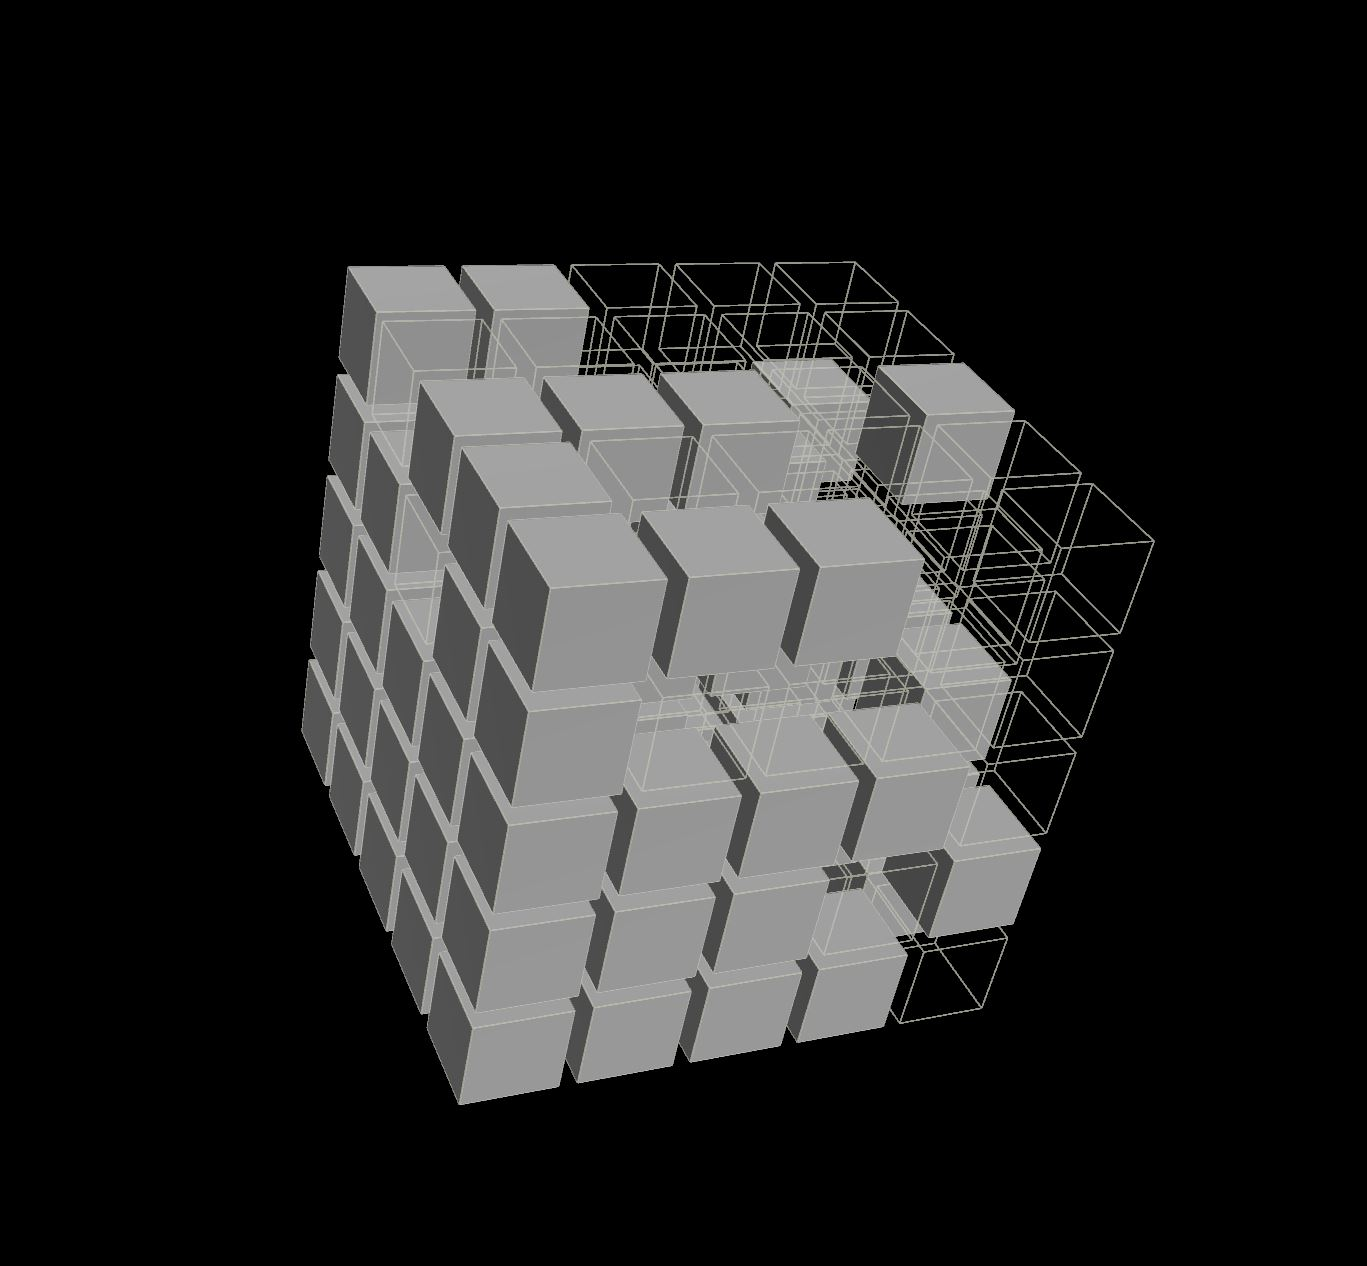 Illustration of Voxels in a Volume